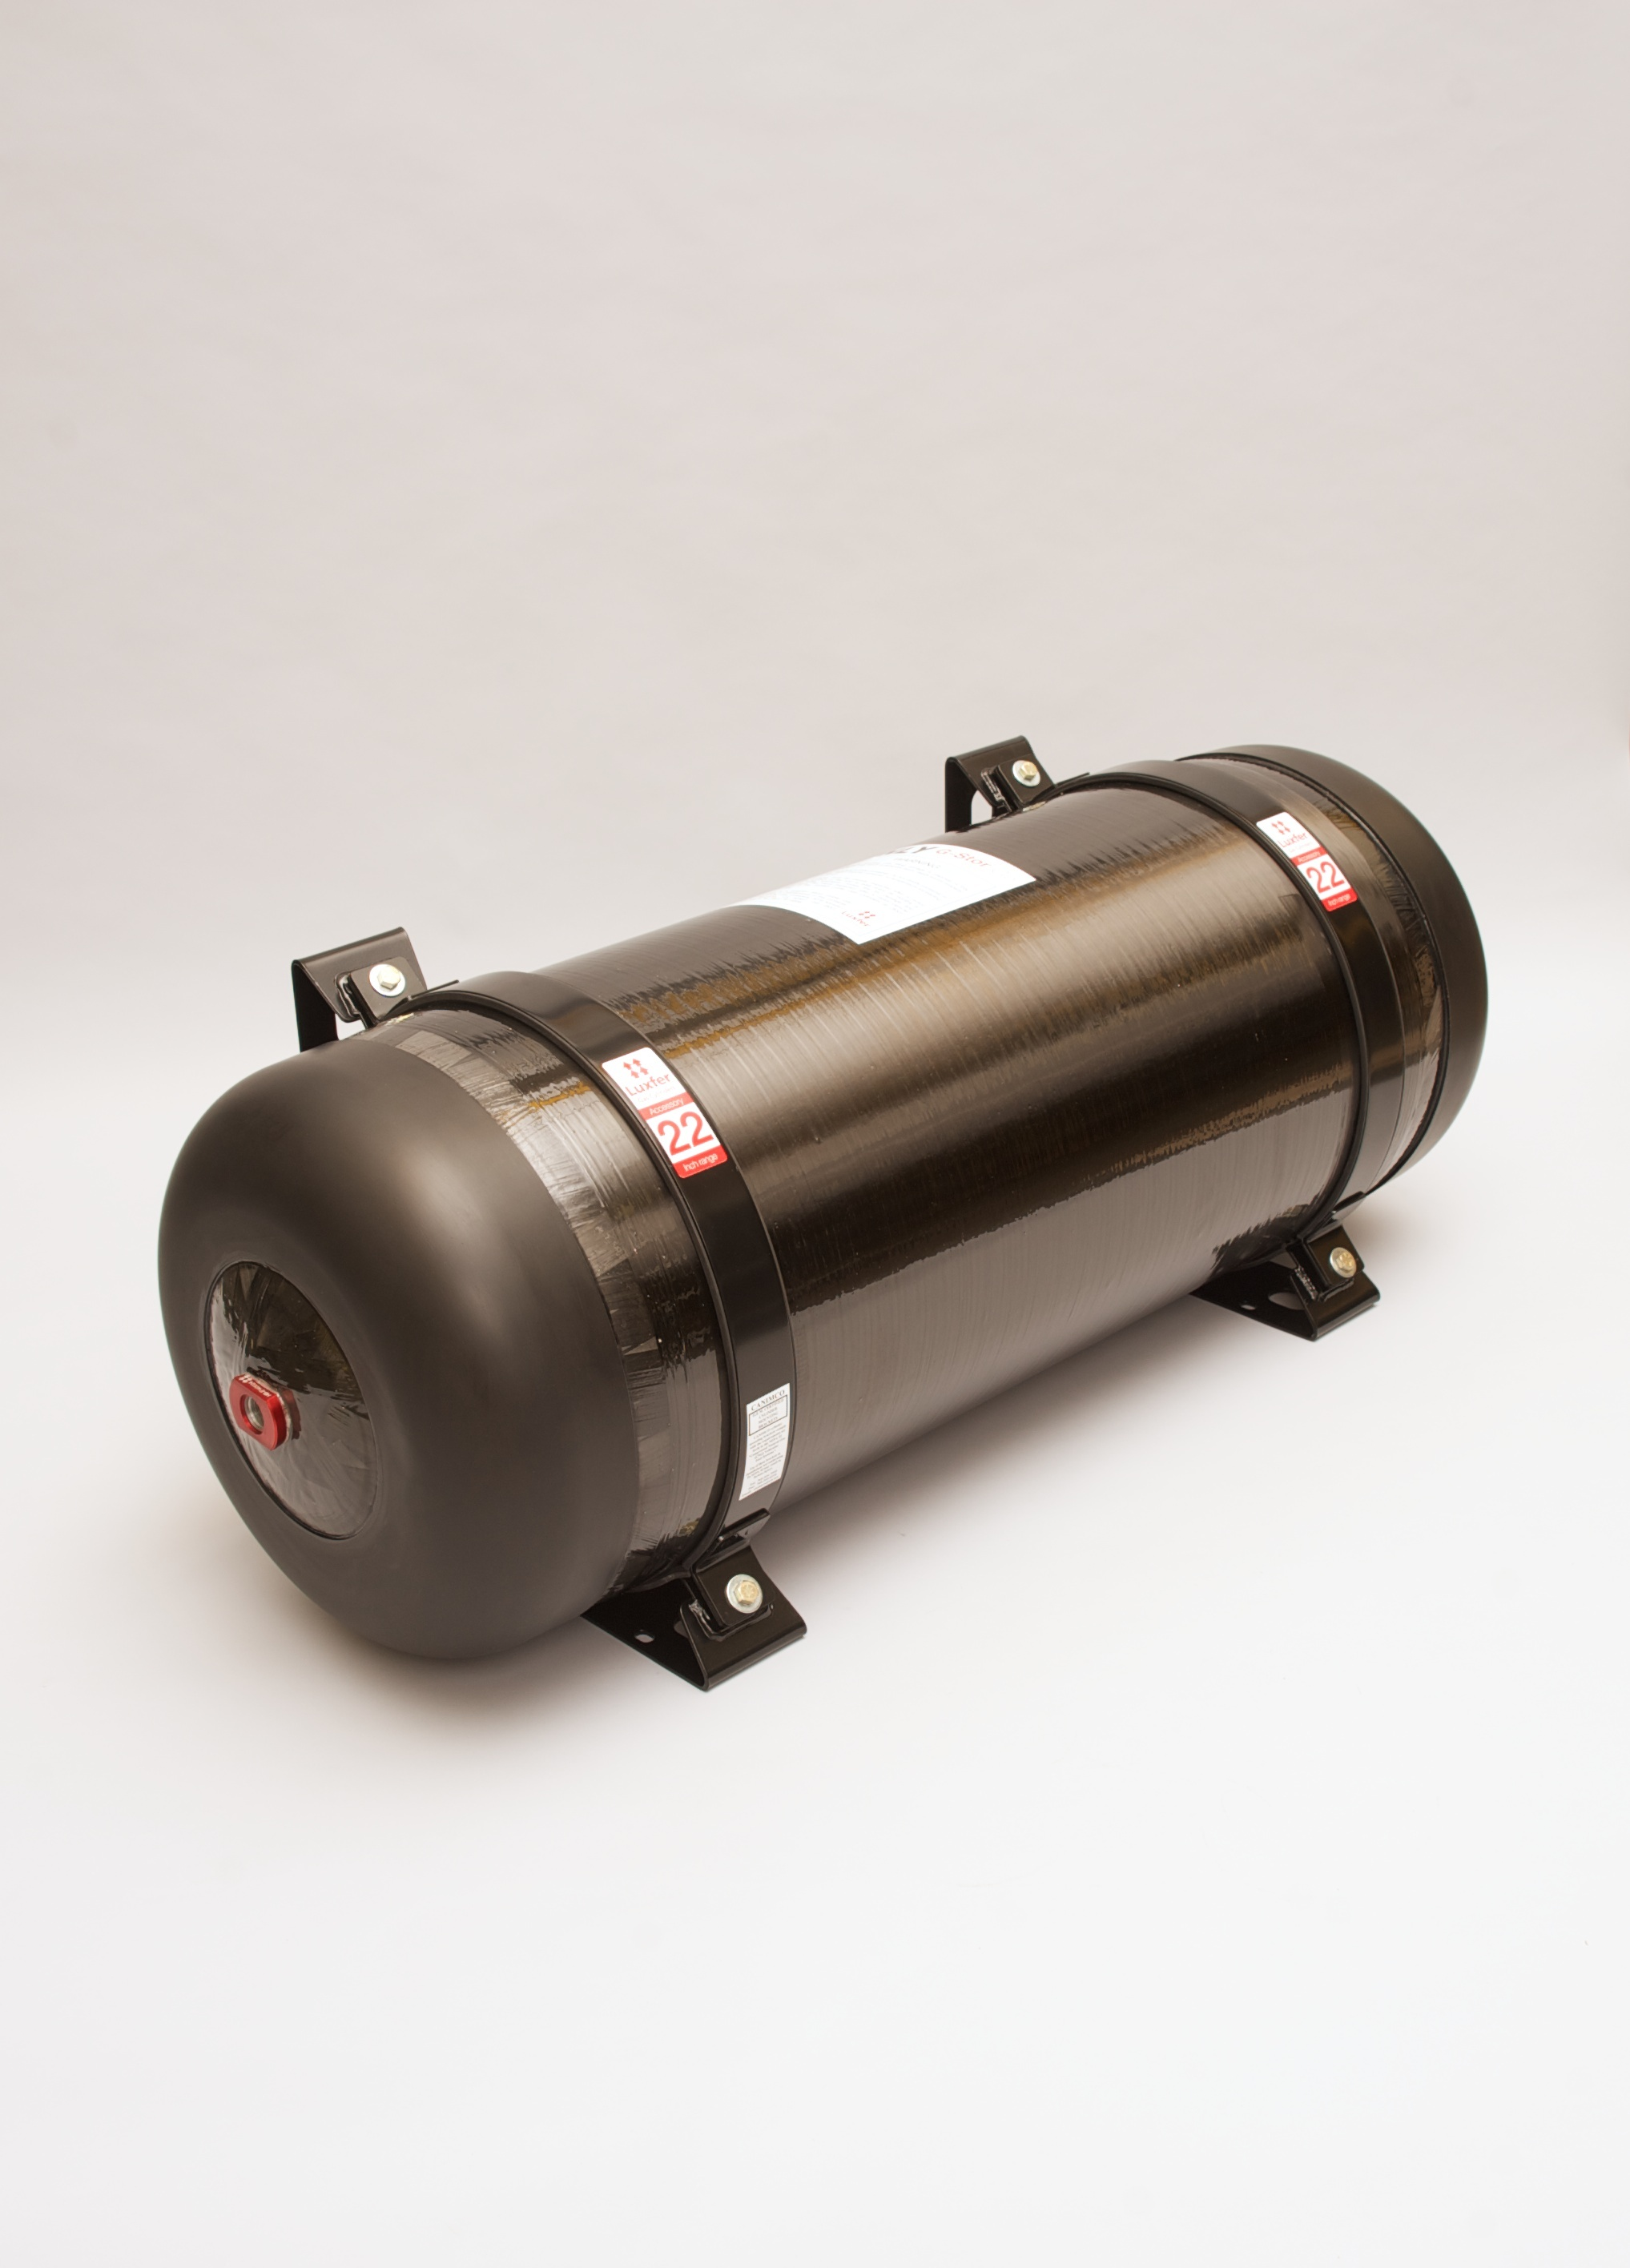 Luxfer 22-inch G-Stor Go Type 4 cylinder for compressed natural gas (CNG). (Photo: Business Wire)